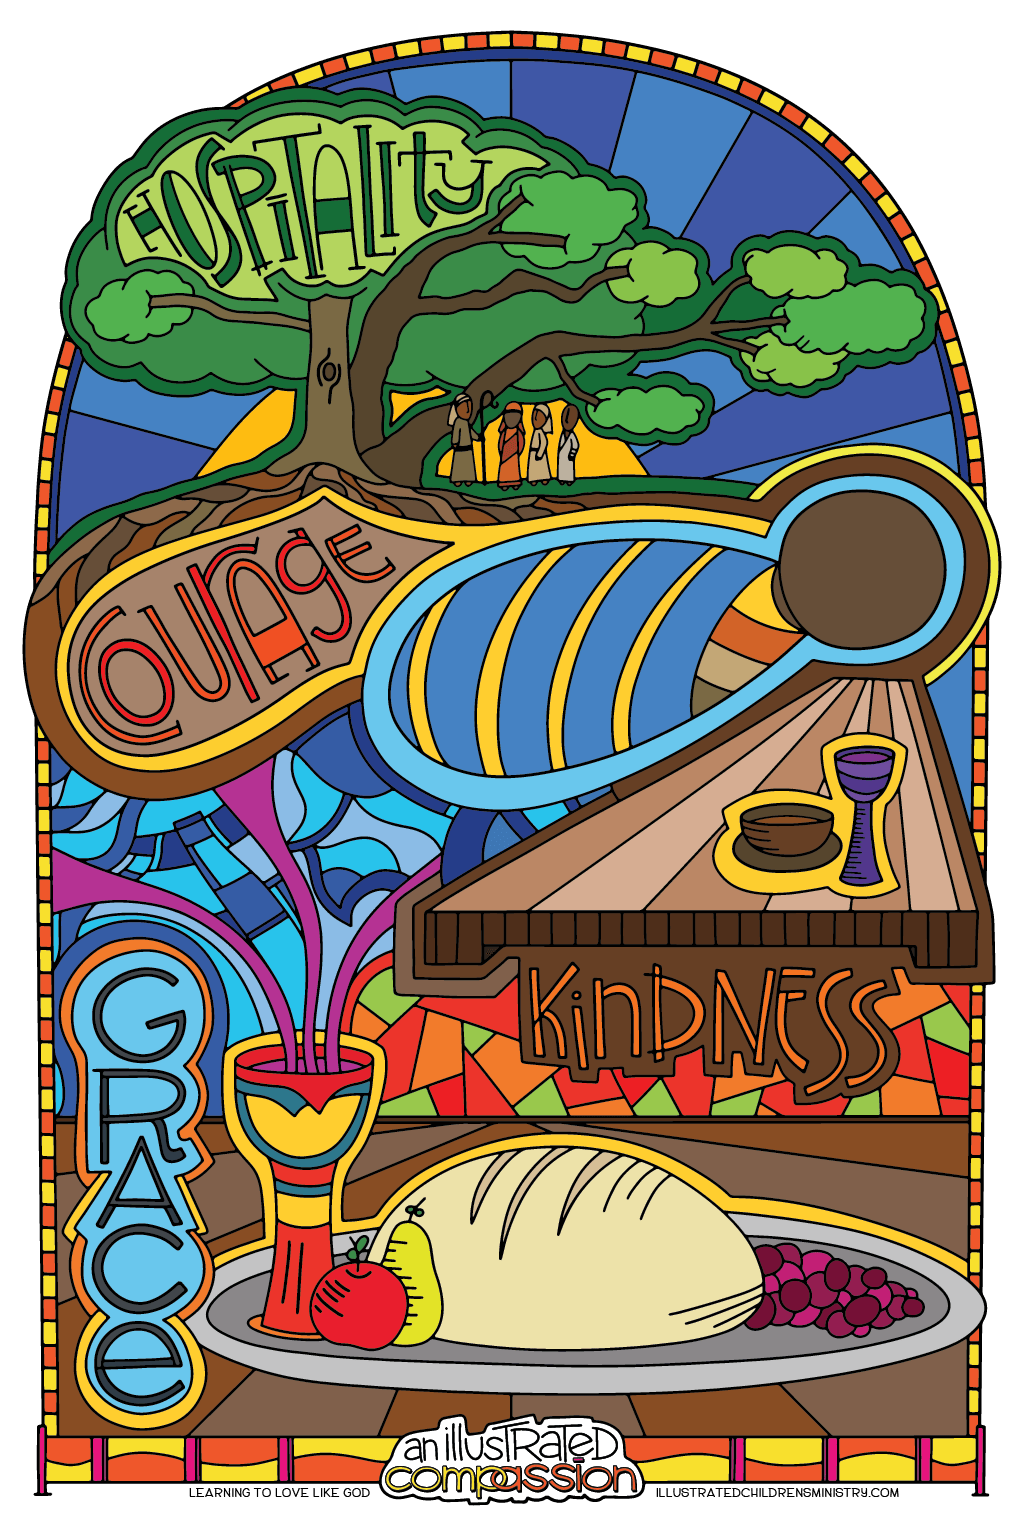 Hospitality, courage, kindness coloring poster